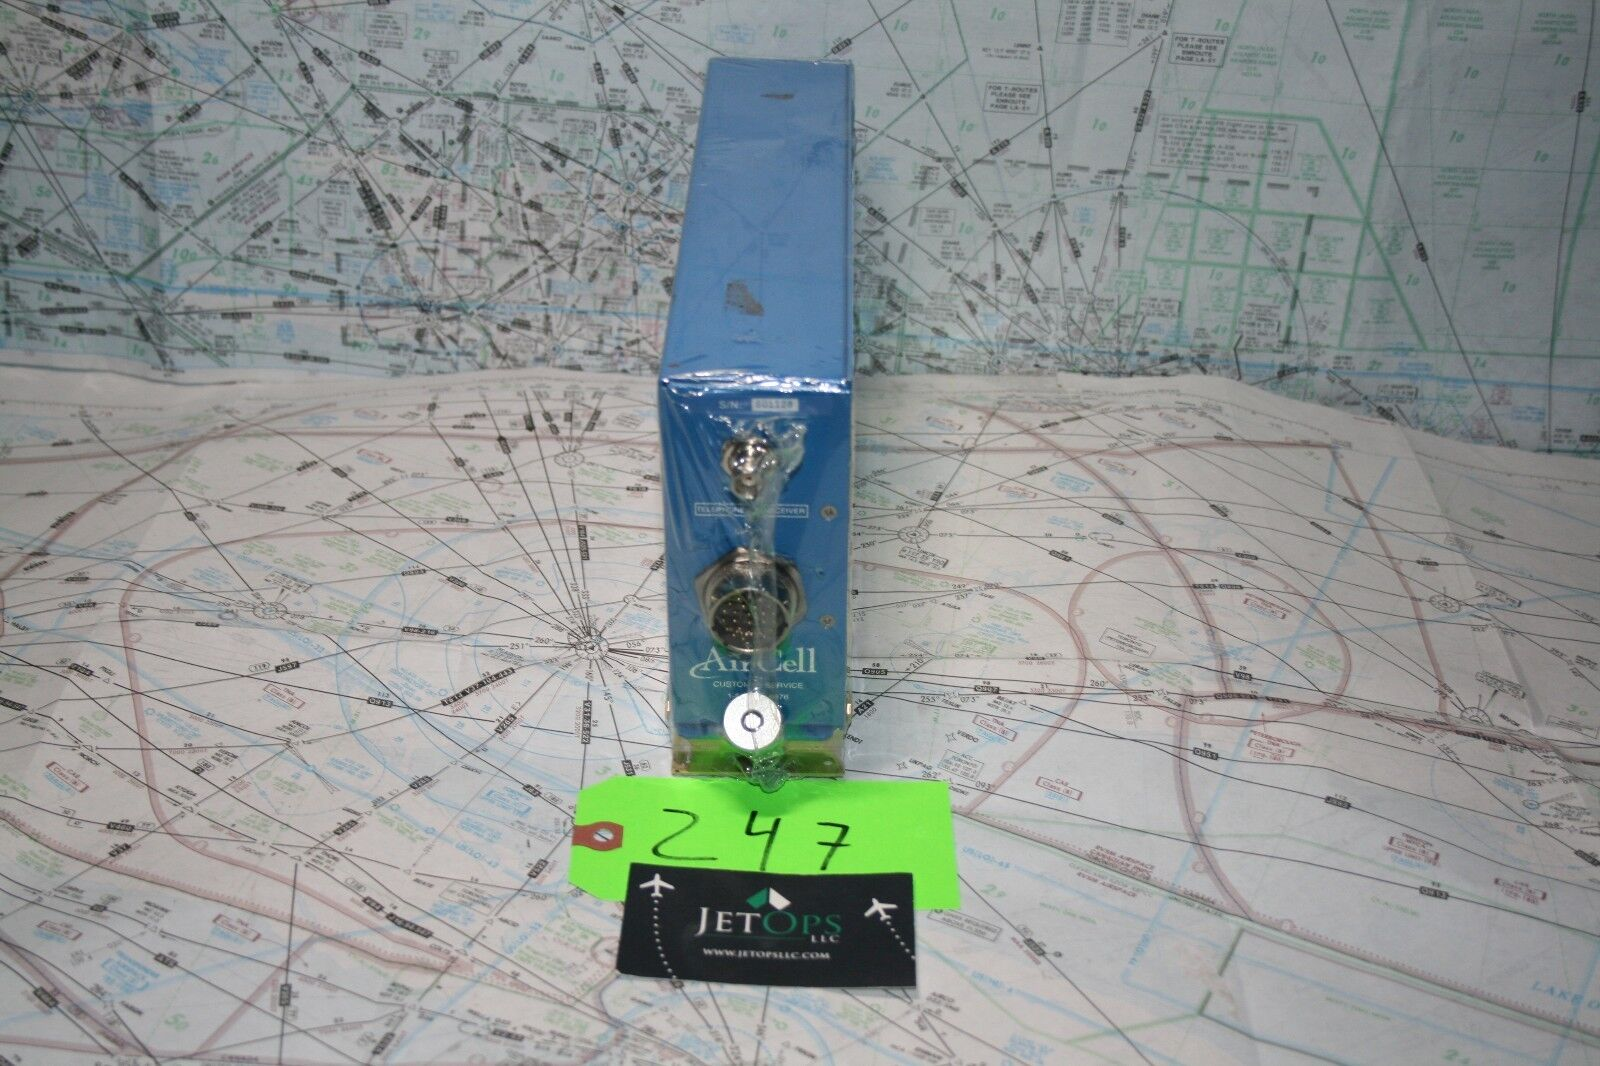 AirCell Telephone Transceiver P/N 900002-1